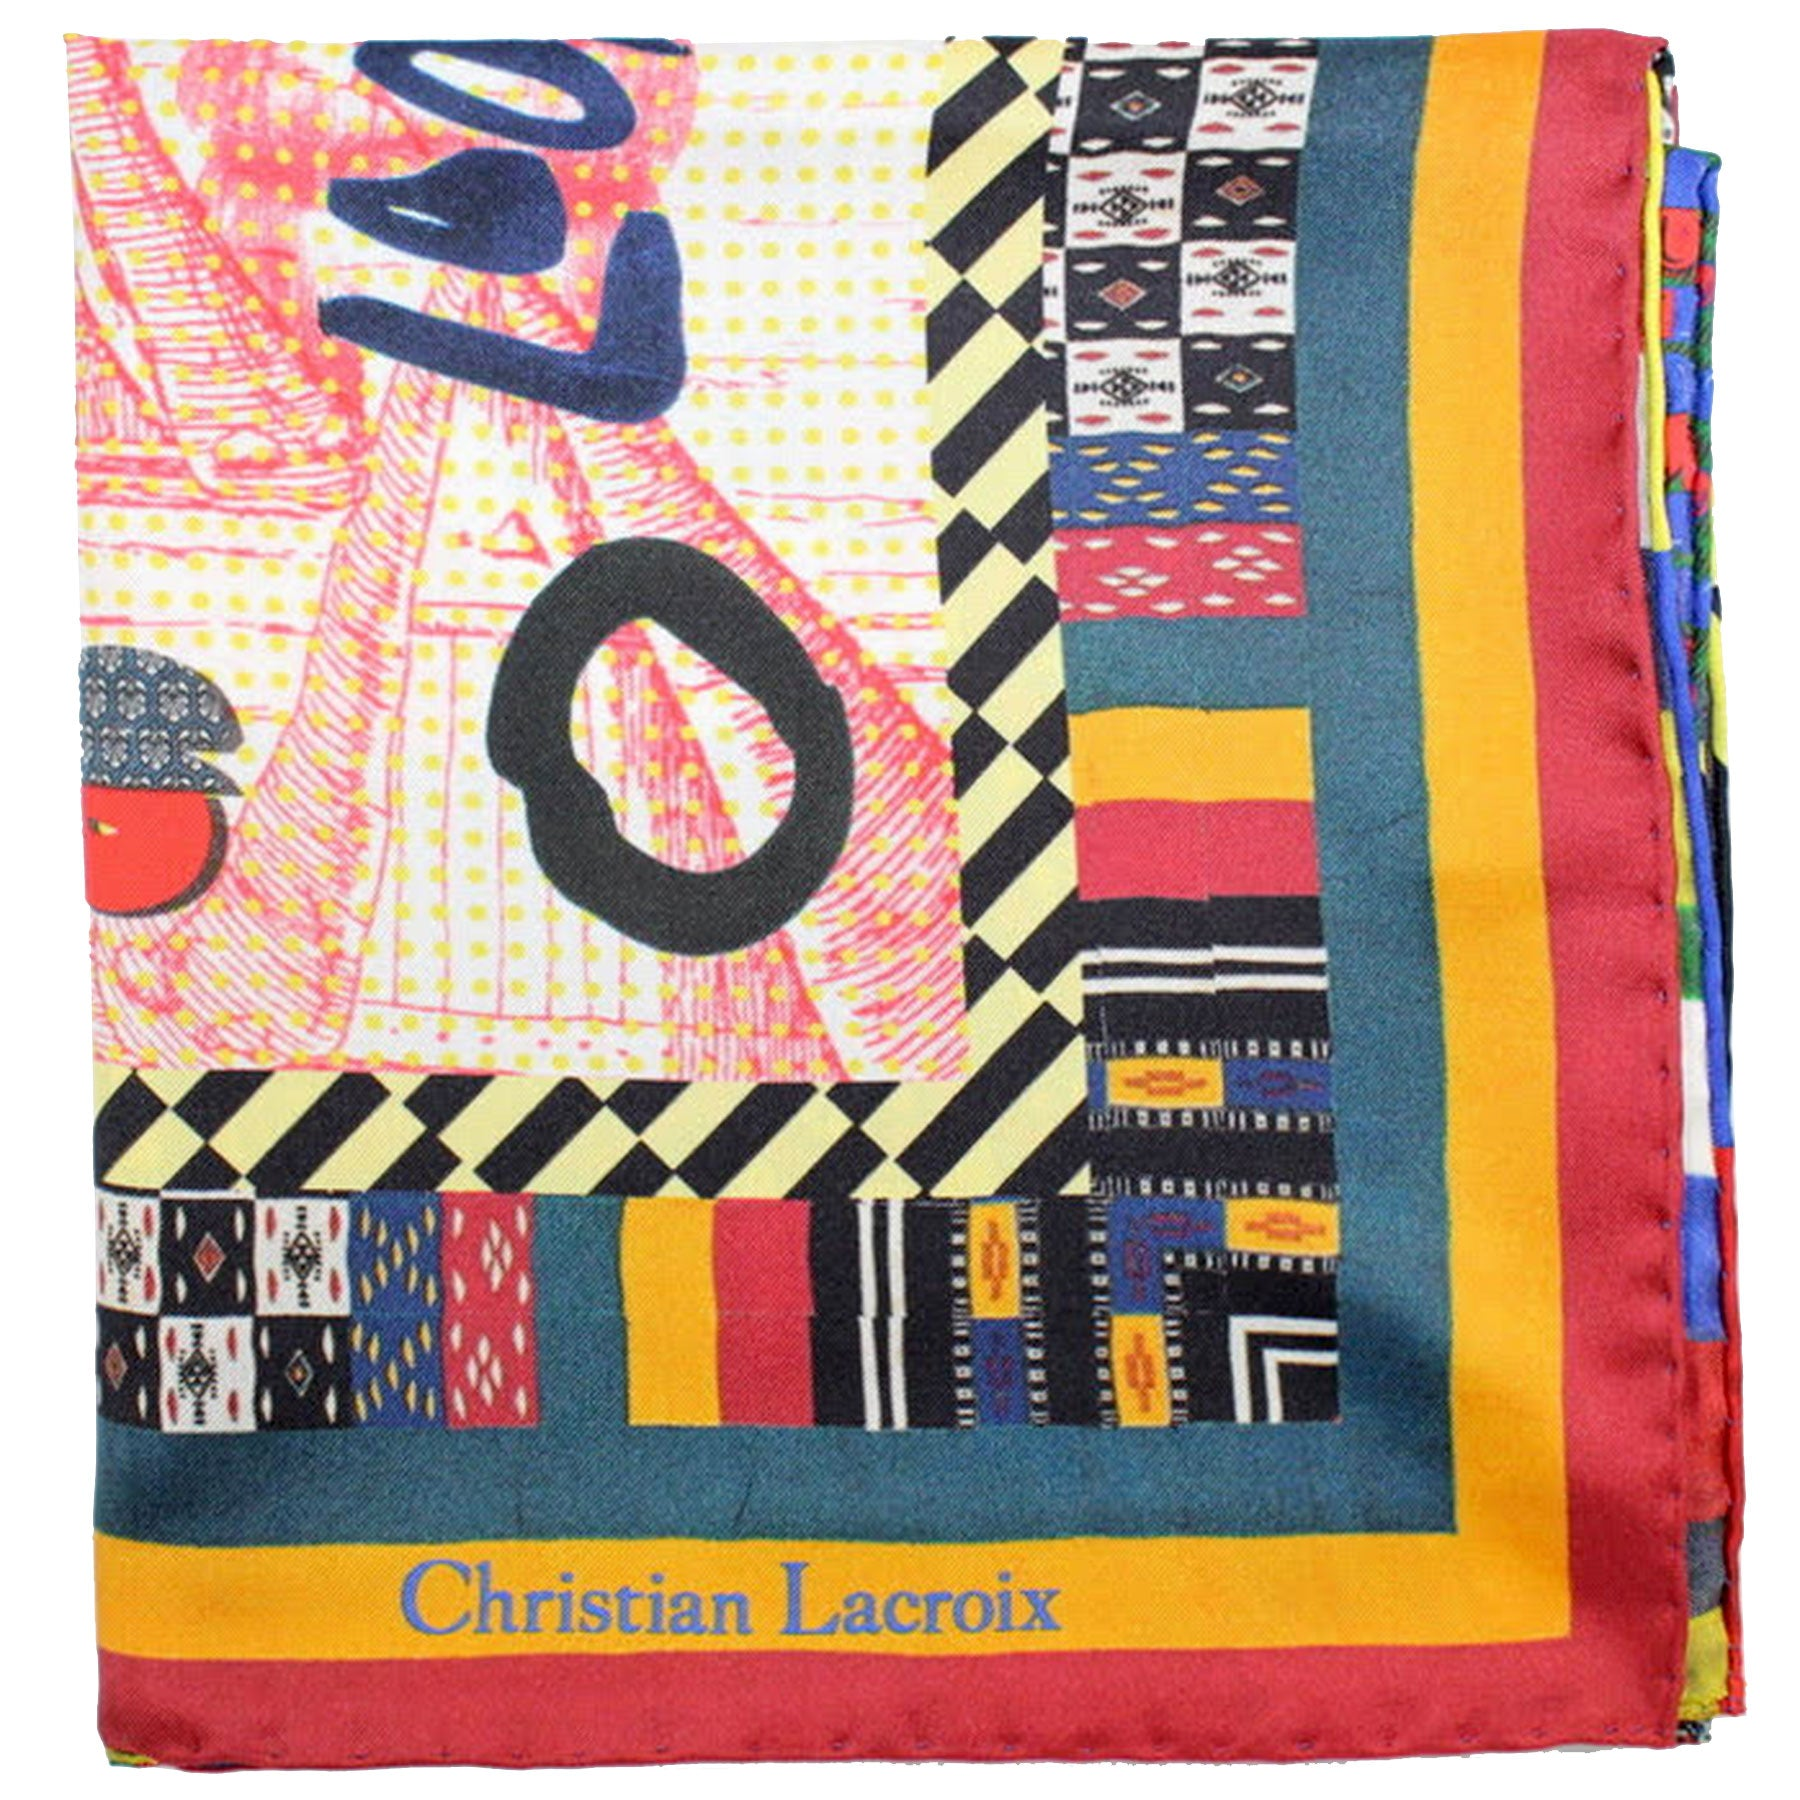 Christian Lacroix Scarf Multi Color Novelty Design - Large Twill Silk Square Scarf